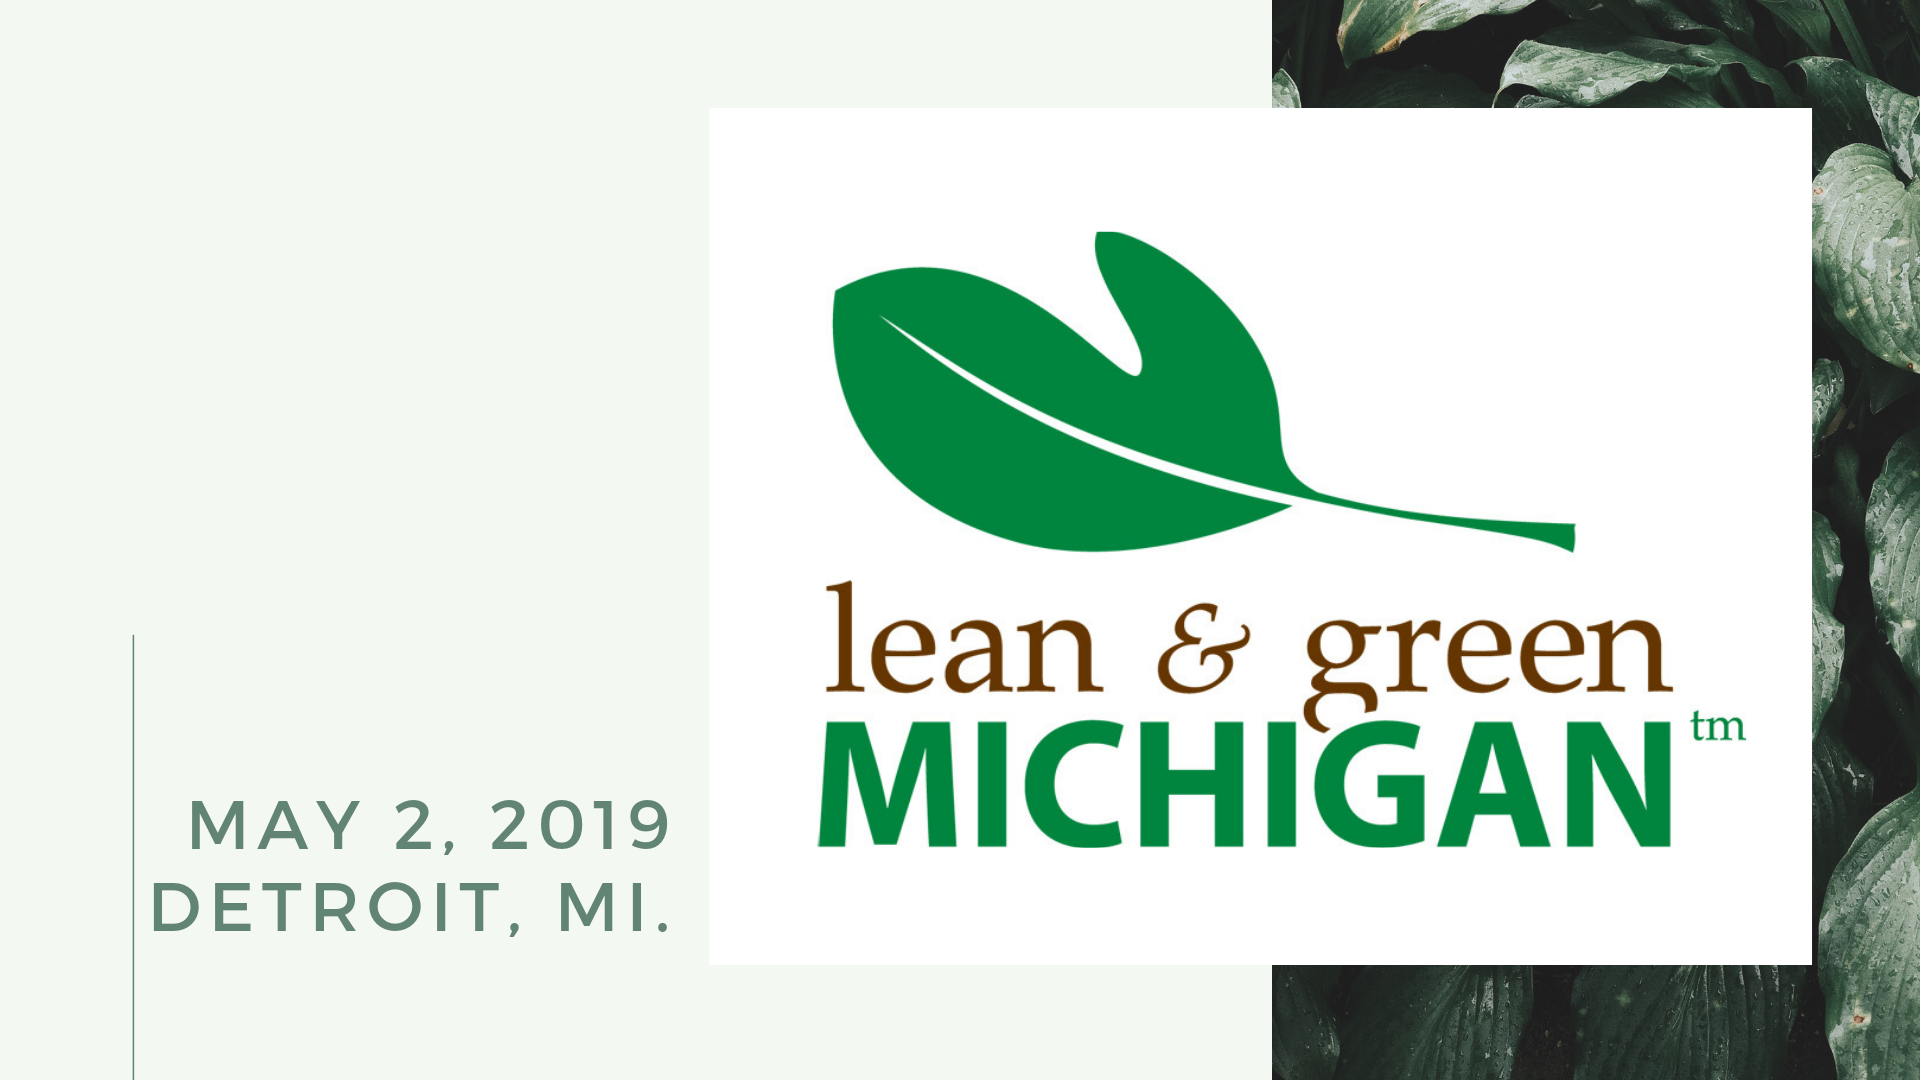 MAY 2, 2019 - DETROIT, MICHIGAN - LEAN & GREEN MICHIGAN